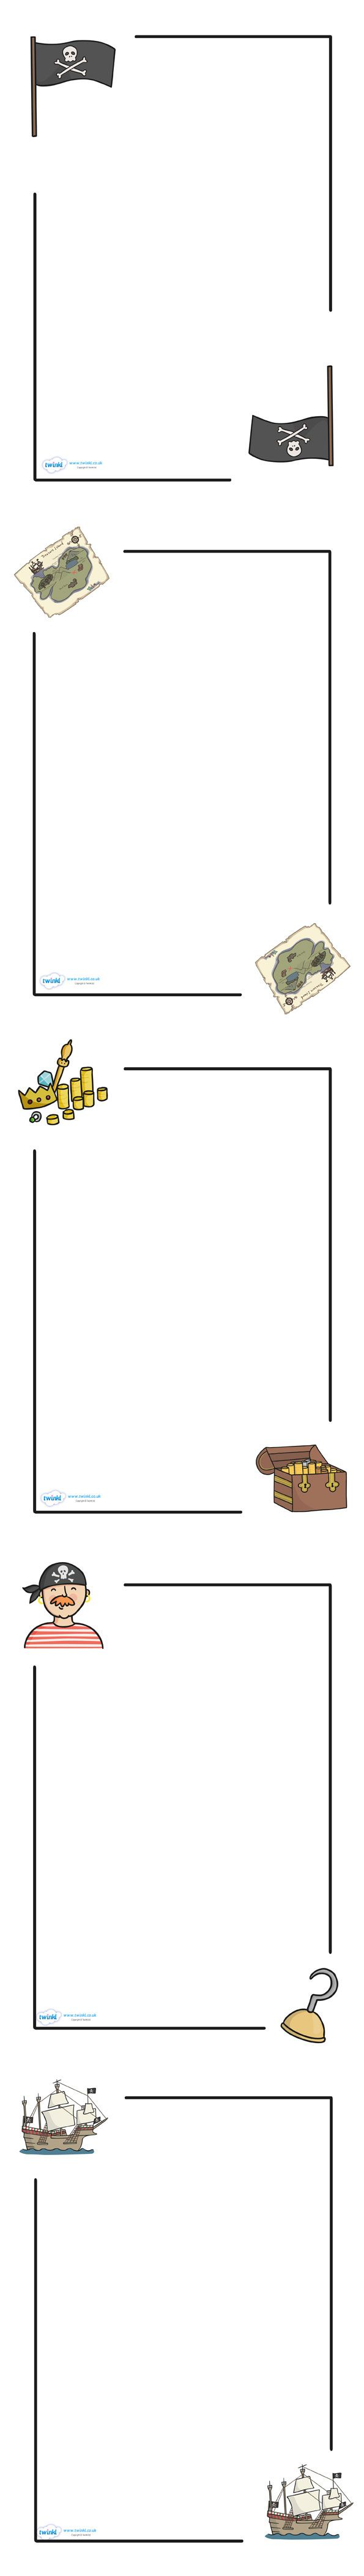 Twinkl Resources >> free printables. Pirate Page Borders  >> Thousands of printable primary teaching resources for EYFS, KS1, KS2 and beyond! activity, pirate, pirate themed, treasure, pirate ship, parrot, treasure chest, jolly roger, ship, island, ocean, page border, border, template,